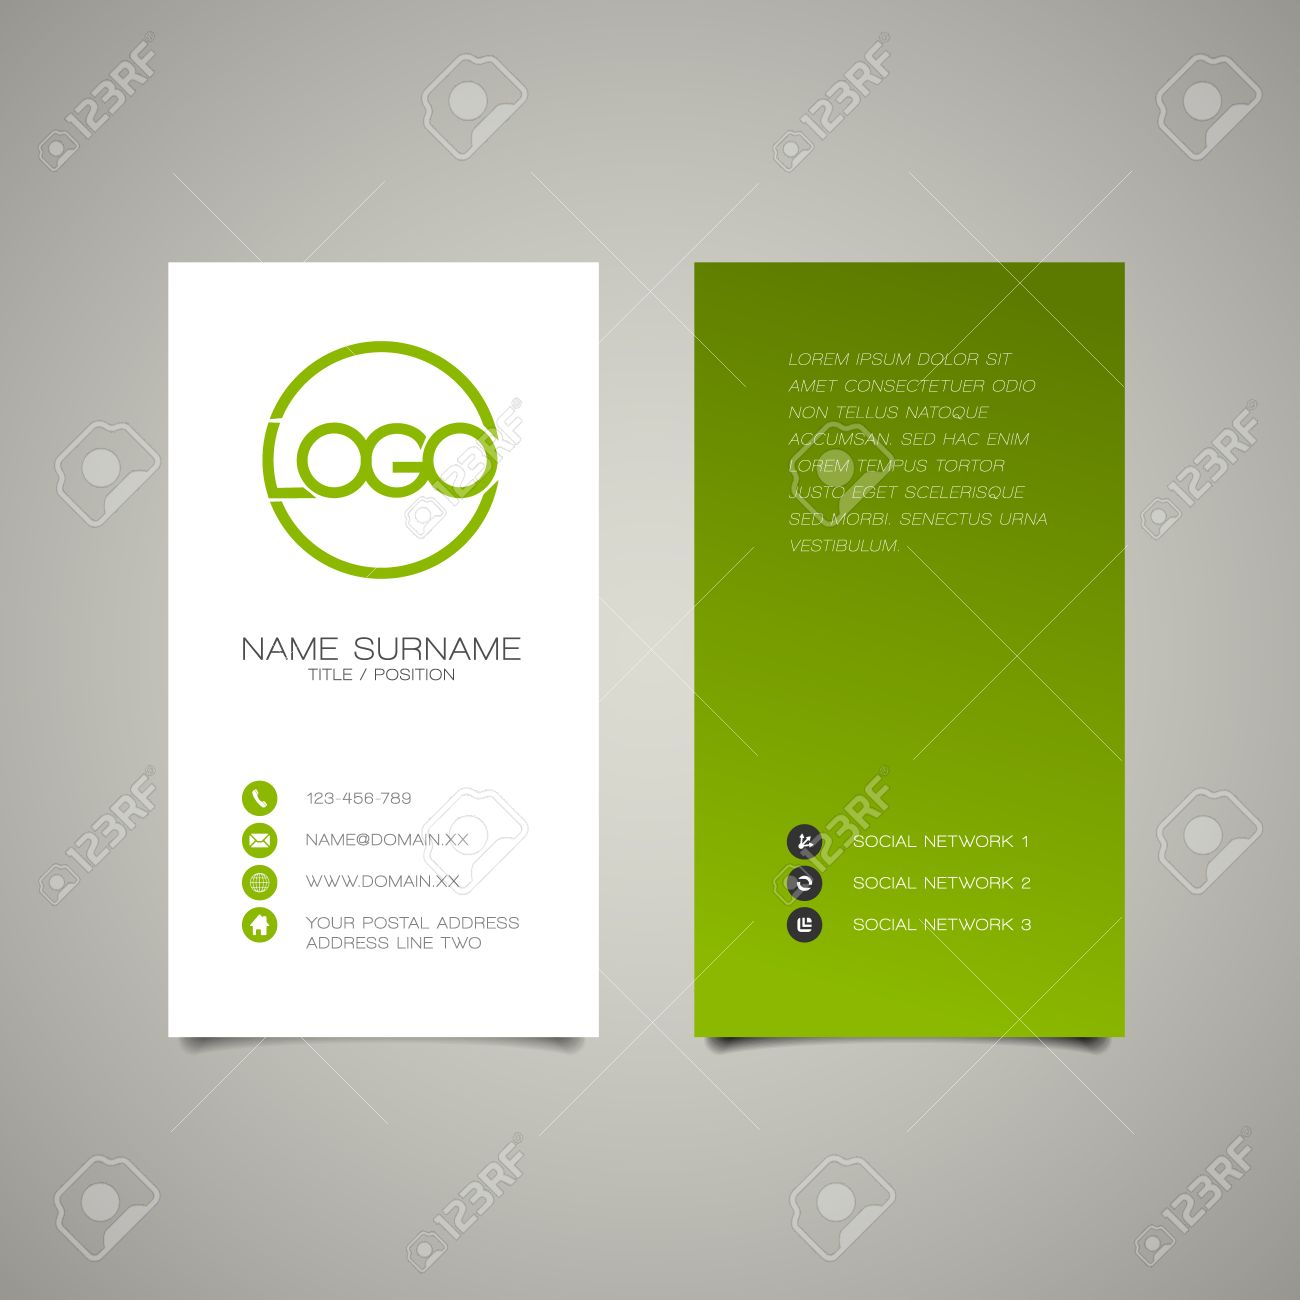 Modern Simple Vertical Business Card Template With Place For ...